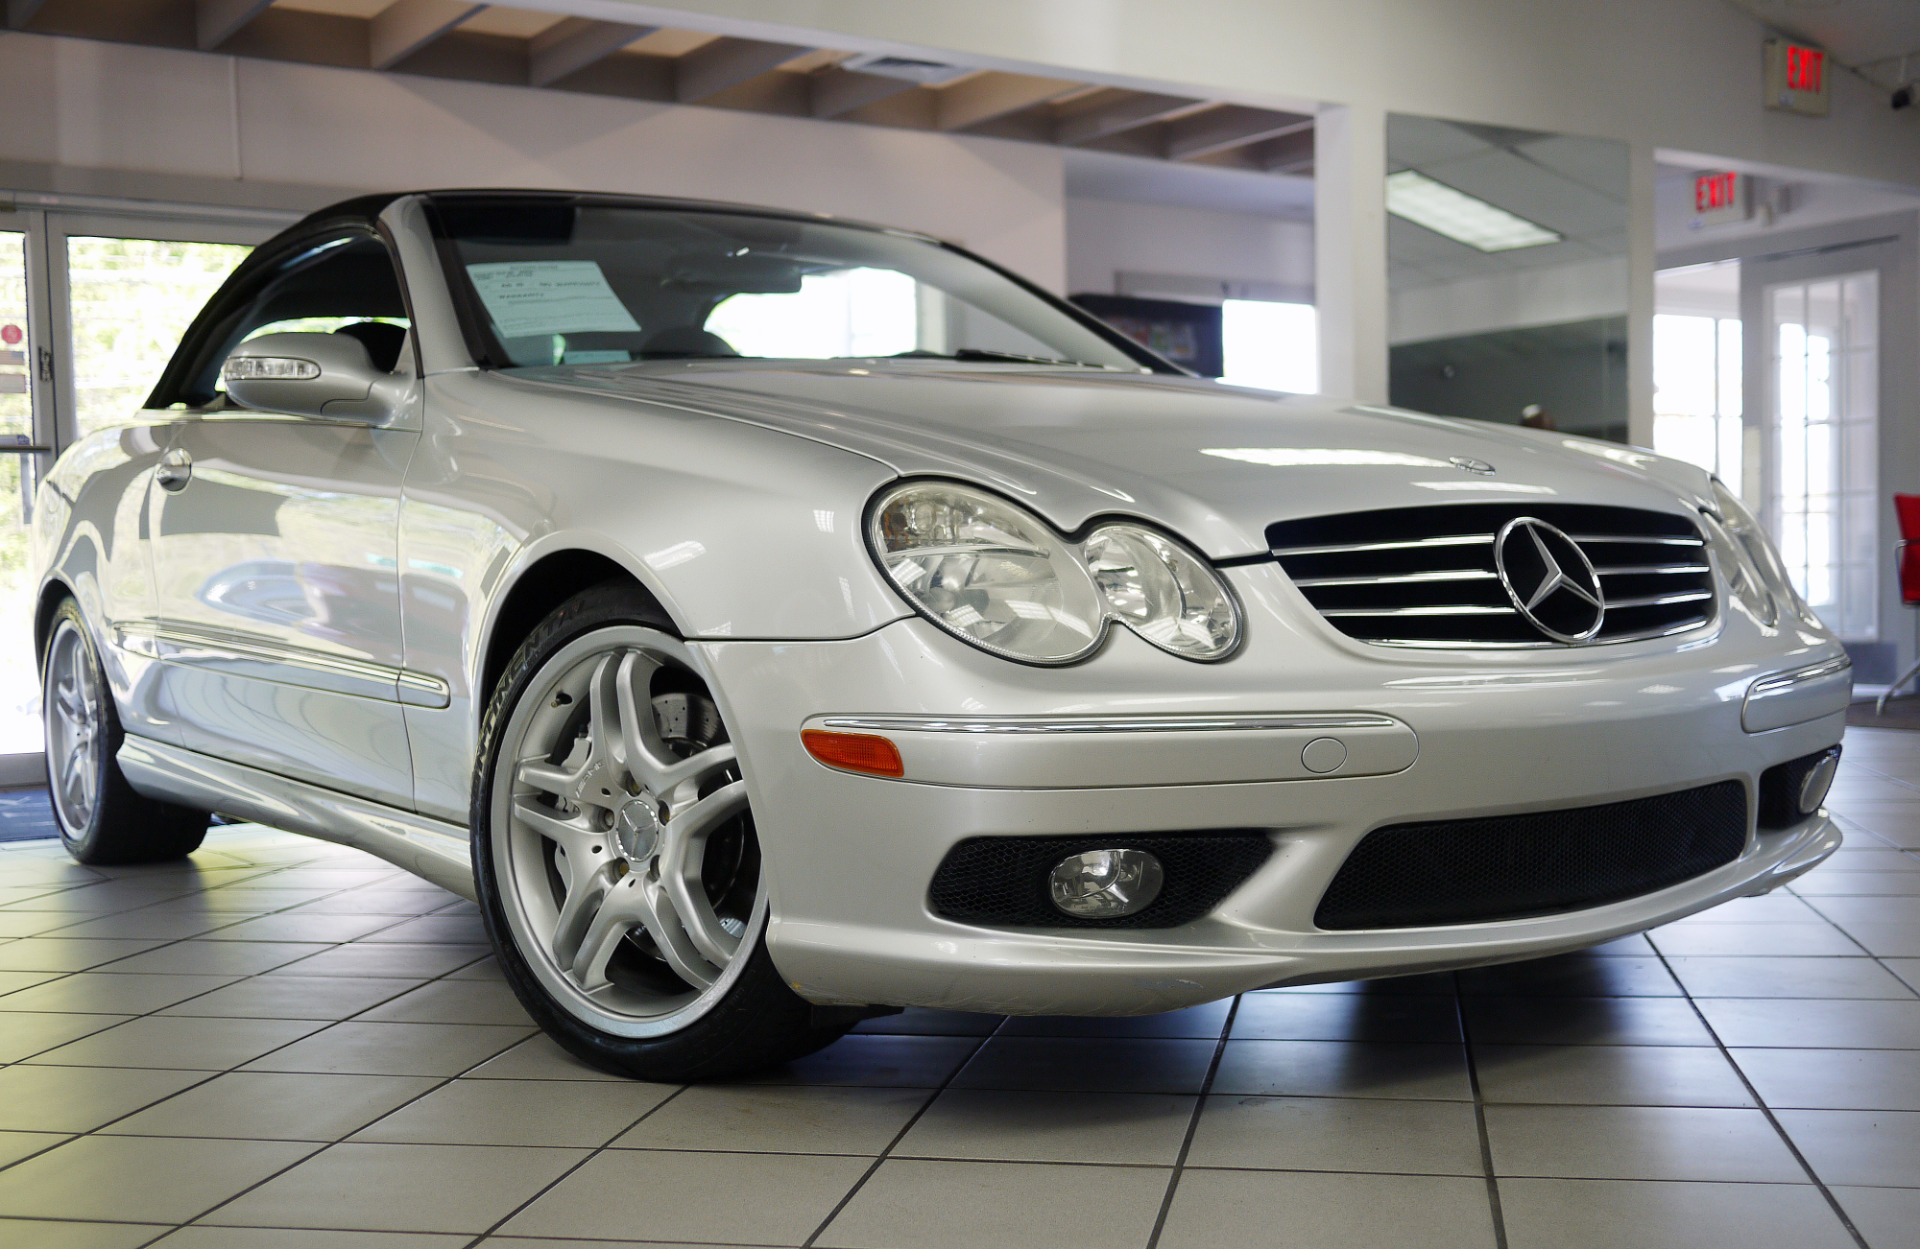 used 2005 mercedes benz clk class clk55 amg marietta ga. Black Bedroom Furniture Sets. Home Design Ideas